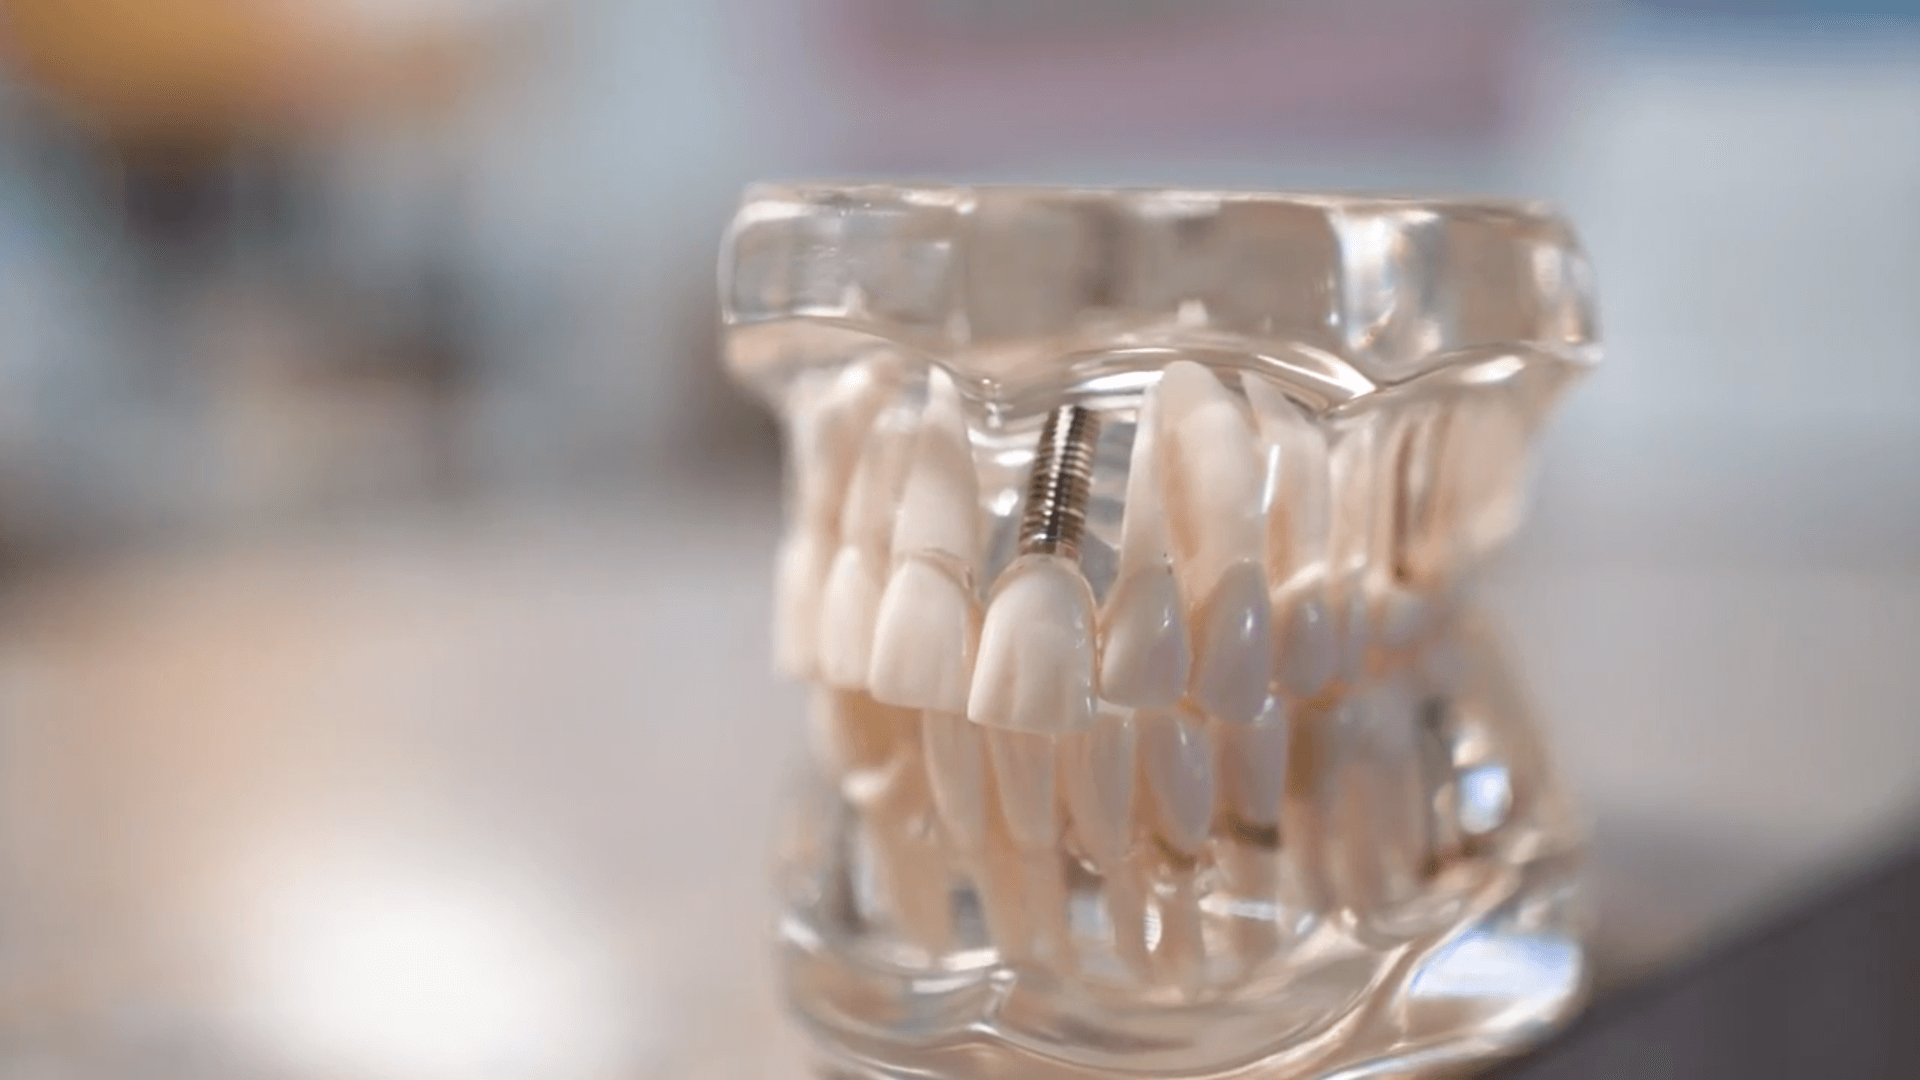 dental implants from cosmetic dentist Dr. Hagstrom - La Mesa